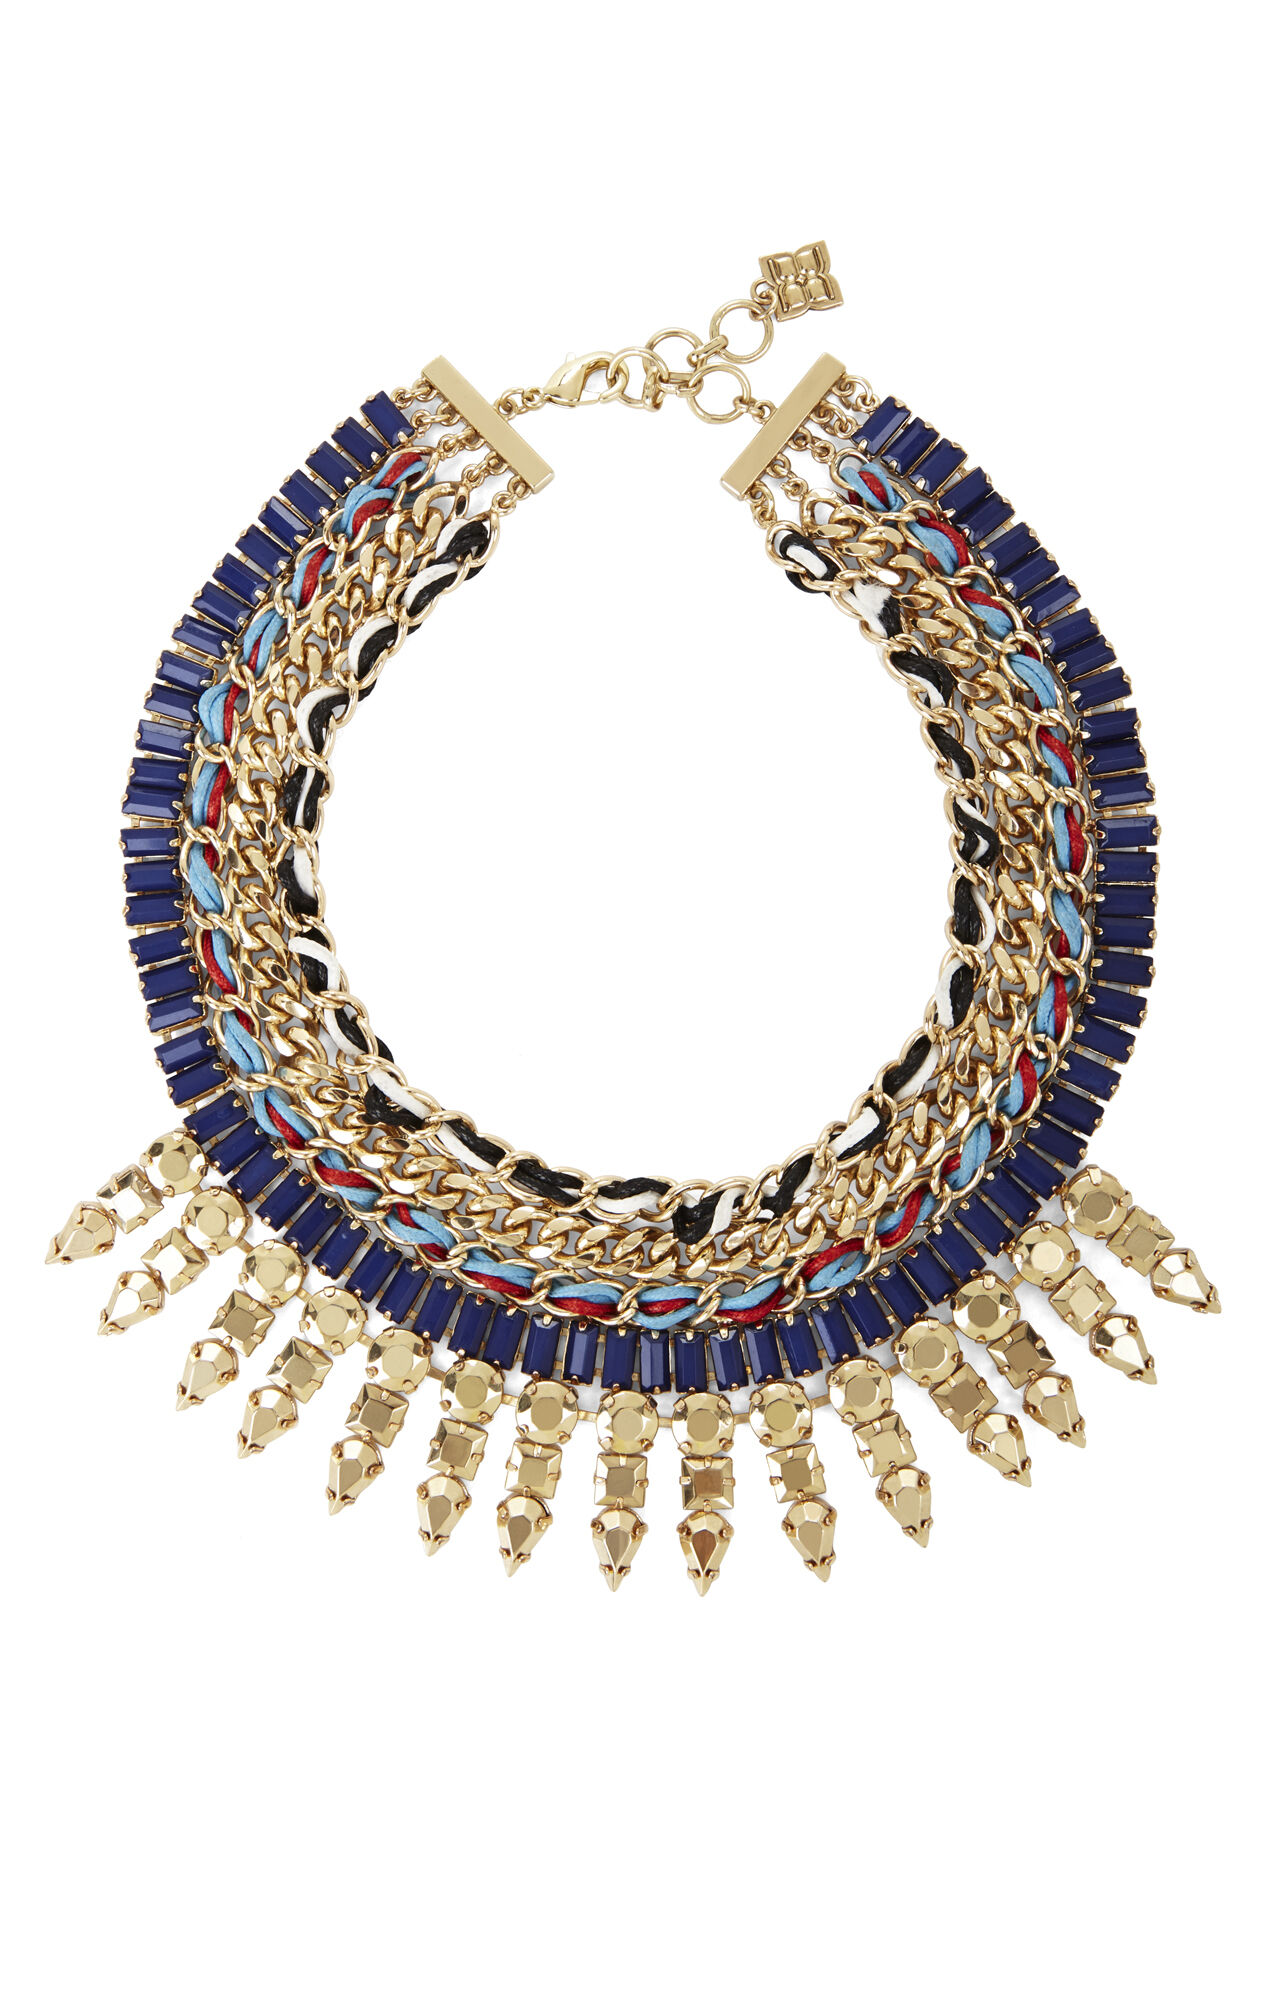 Woven Tribal Spiked Necklace